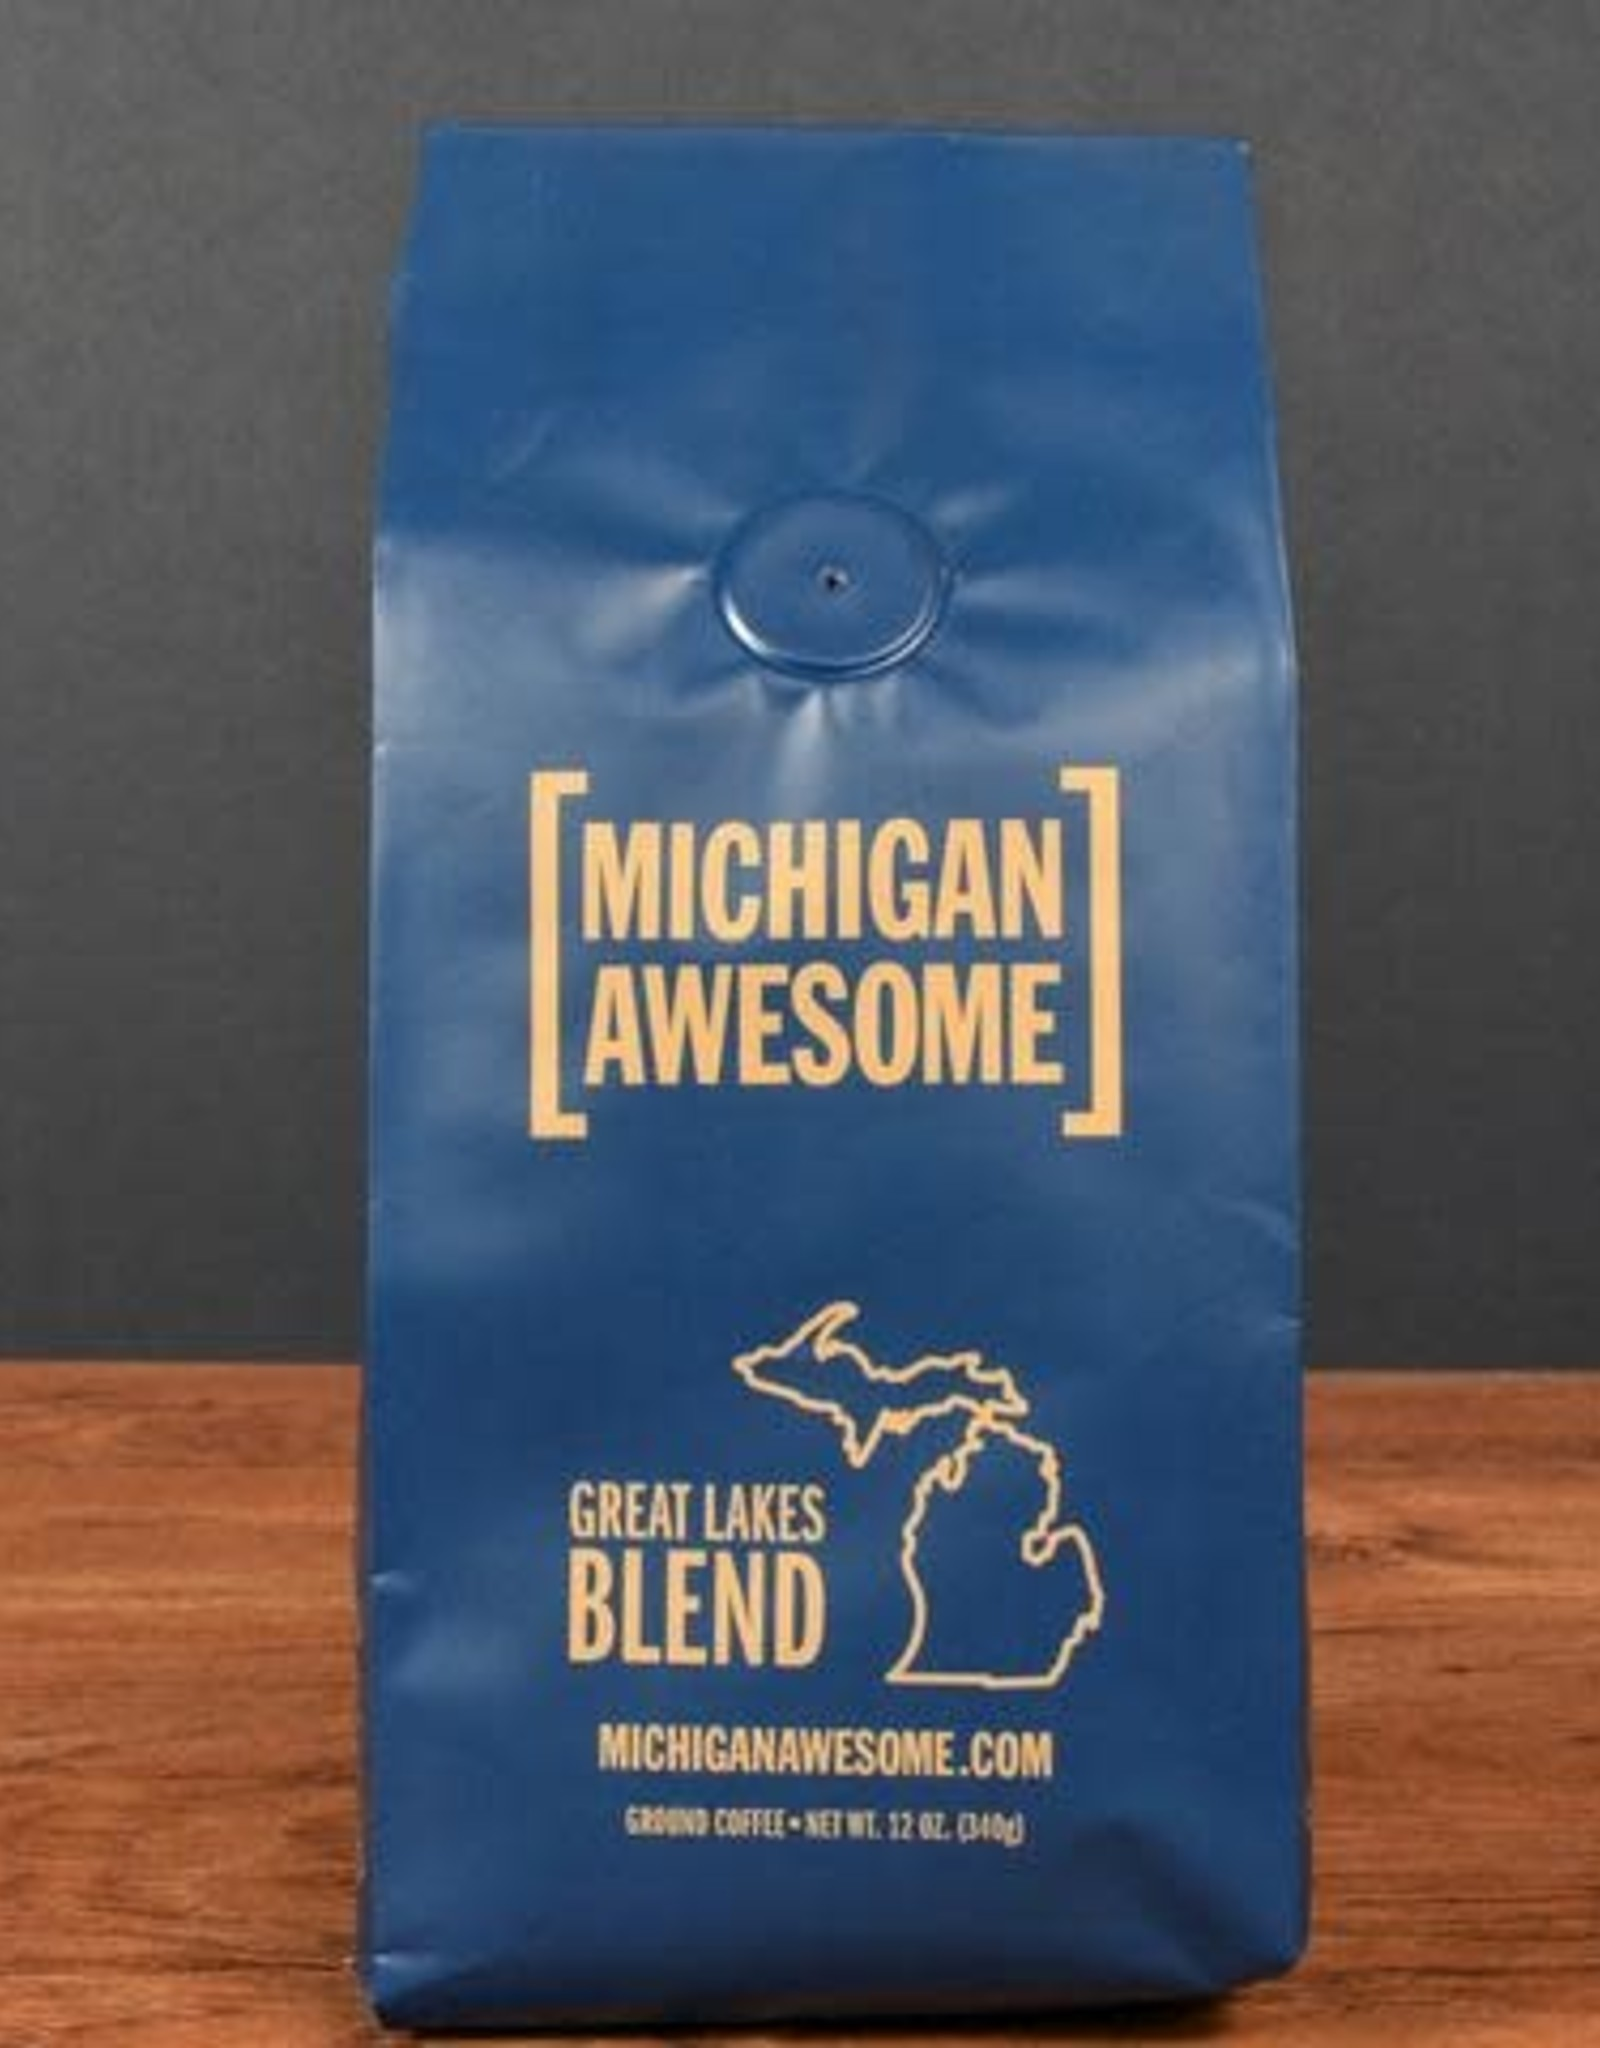 Michigan Awesome Michigan Awesome   Great Lakes Blend Ground Coffee